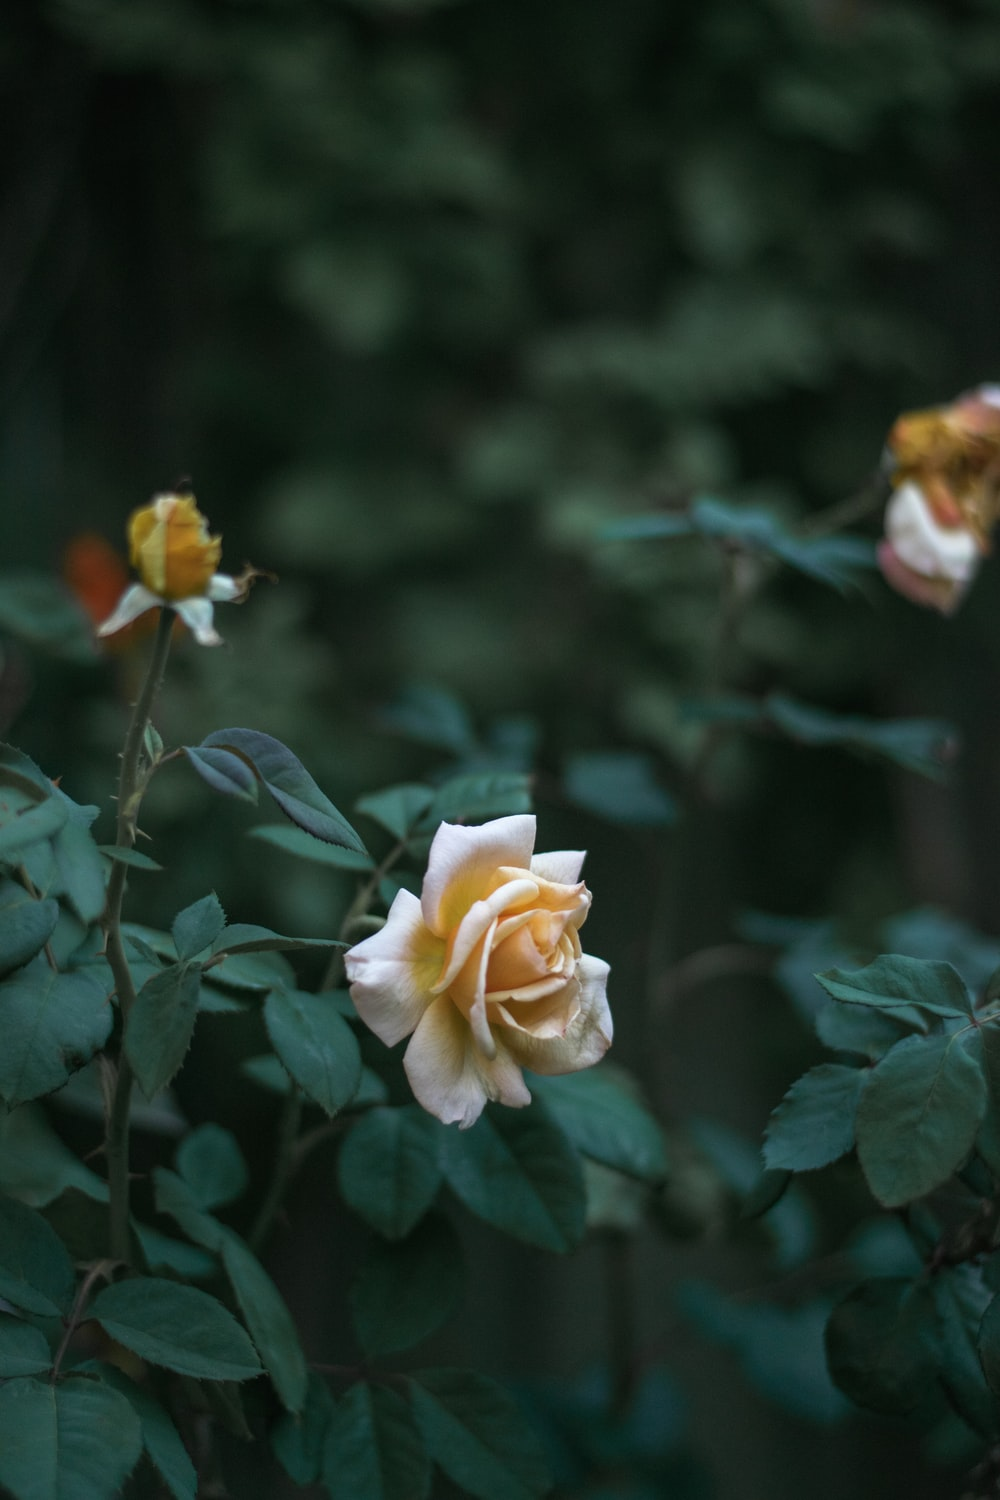 Yellow Rose Pictures Hd Download Free Images On Unsplash